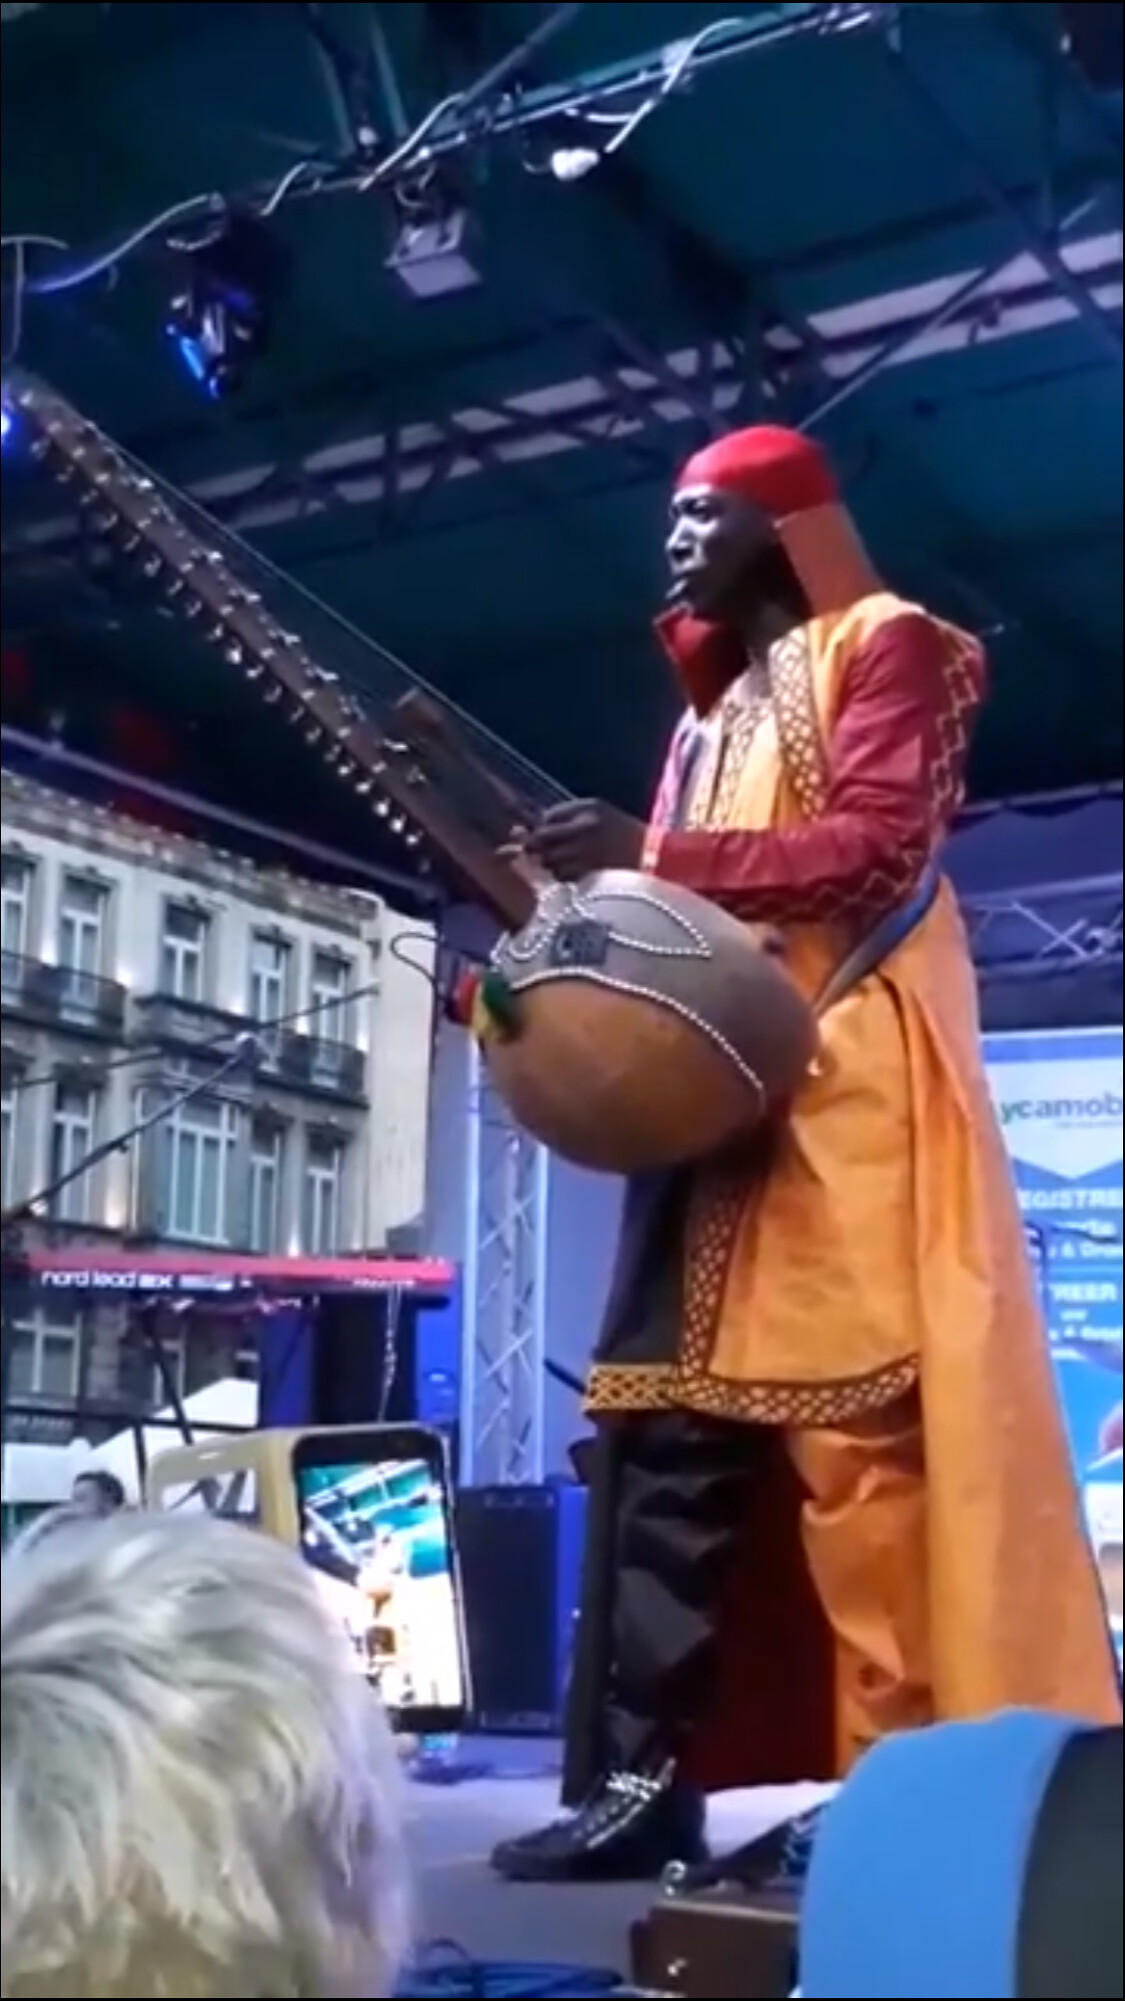 Concert in Brussels @ PERCUSOUNDS Festival